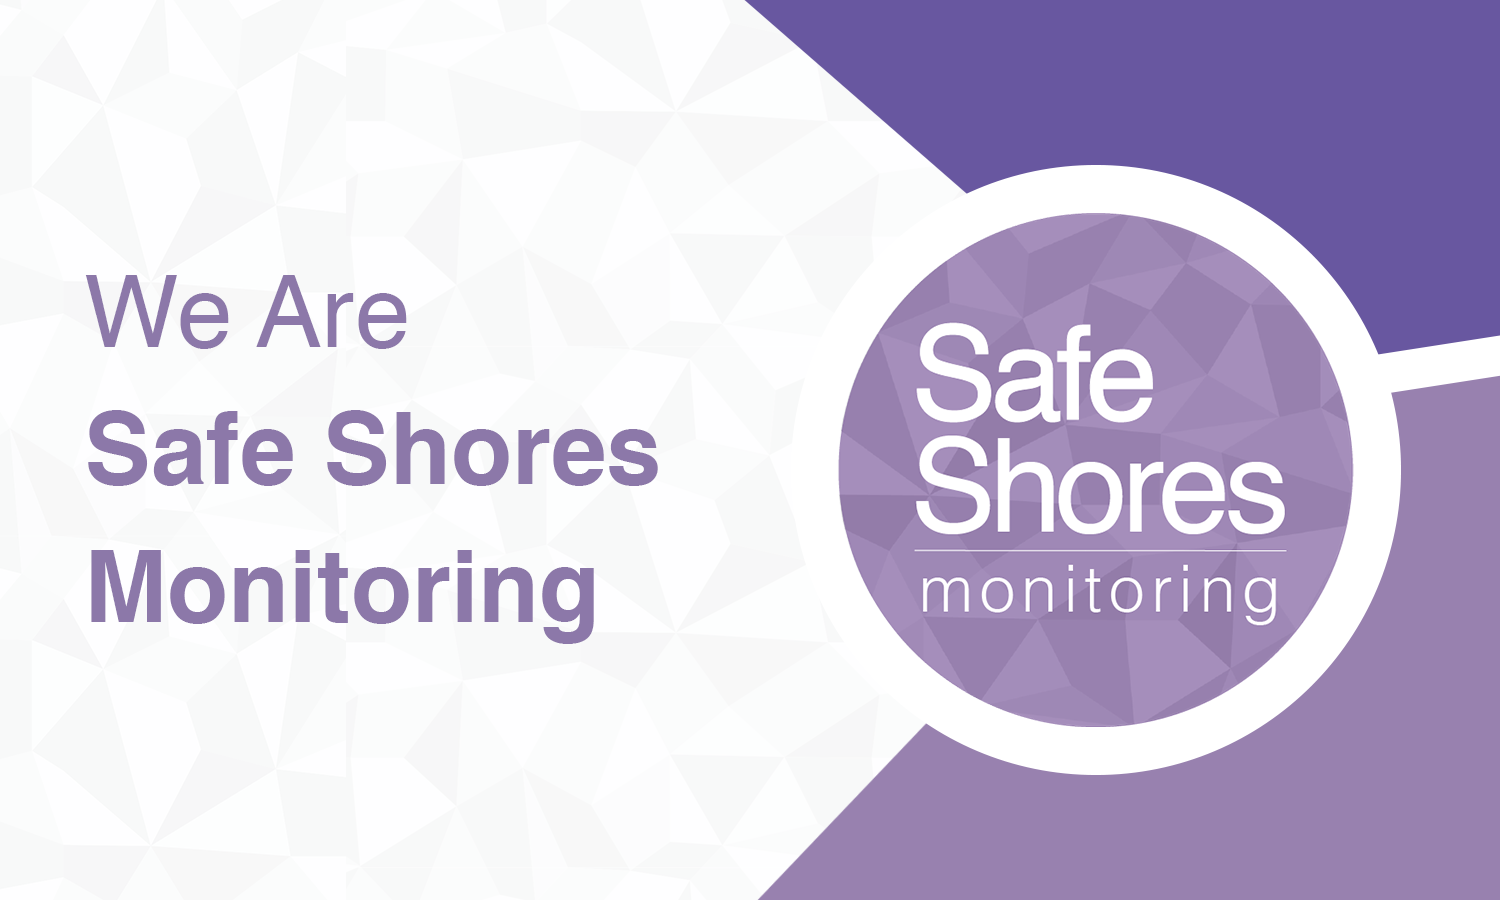 We Are Safe Shores Monitoring